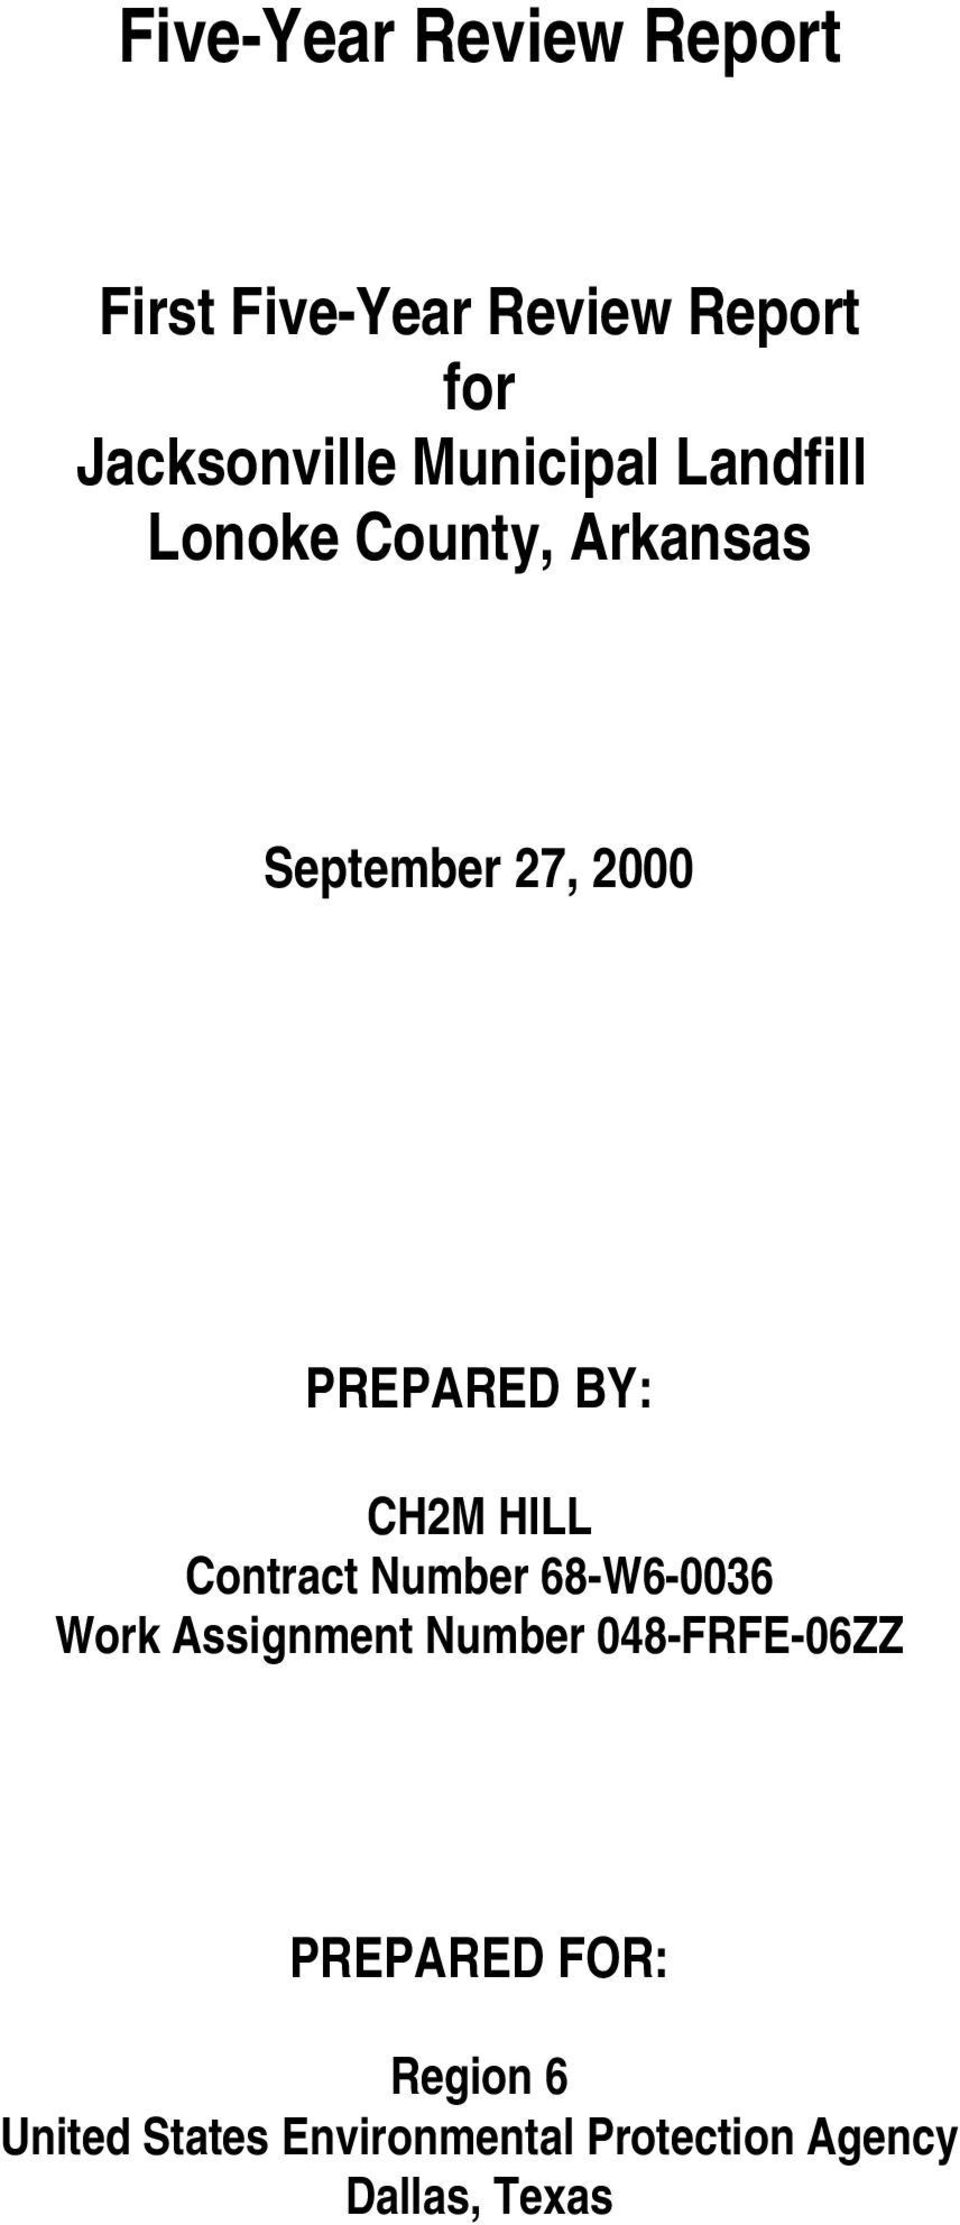 CH2M HILL Contract Number 68-W6-0036 Work Assignment Number 048-FRFE-06ZZ